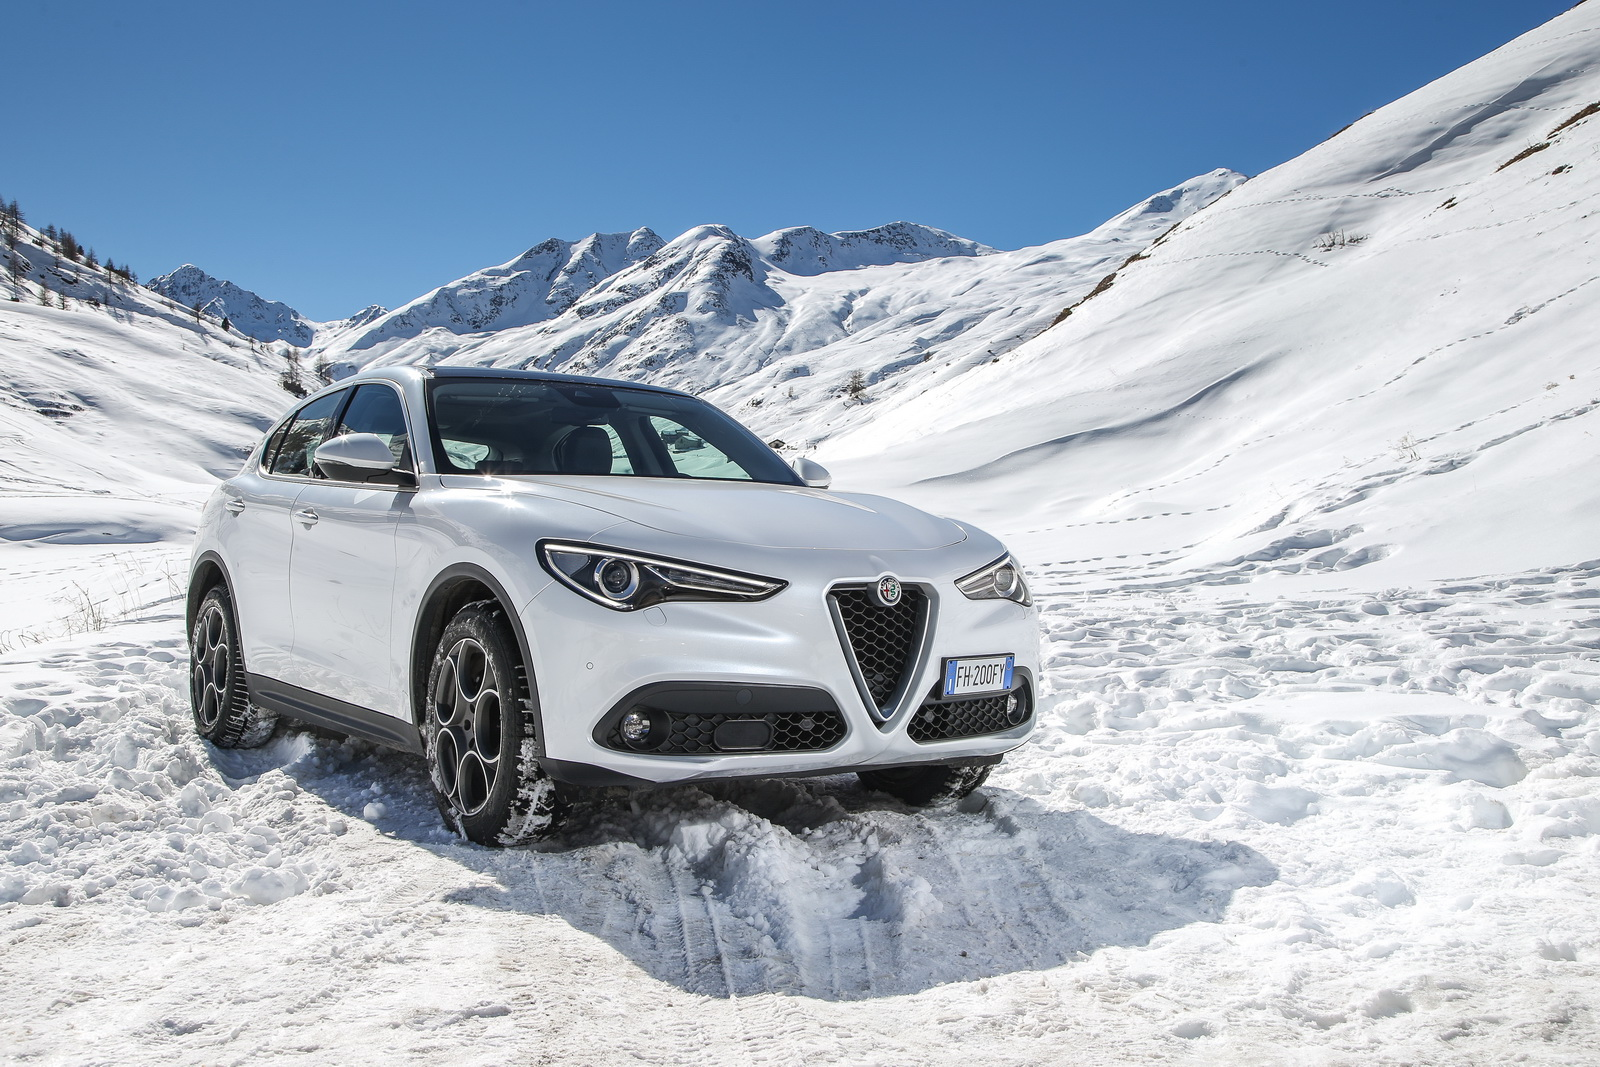 Alfa Romeo Announces Base 2018 Stelvio With 280HP For The USA